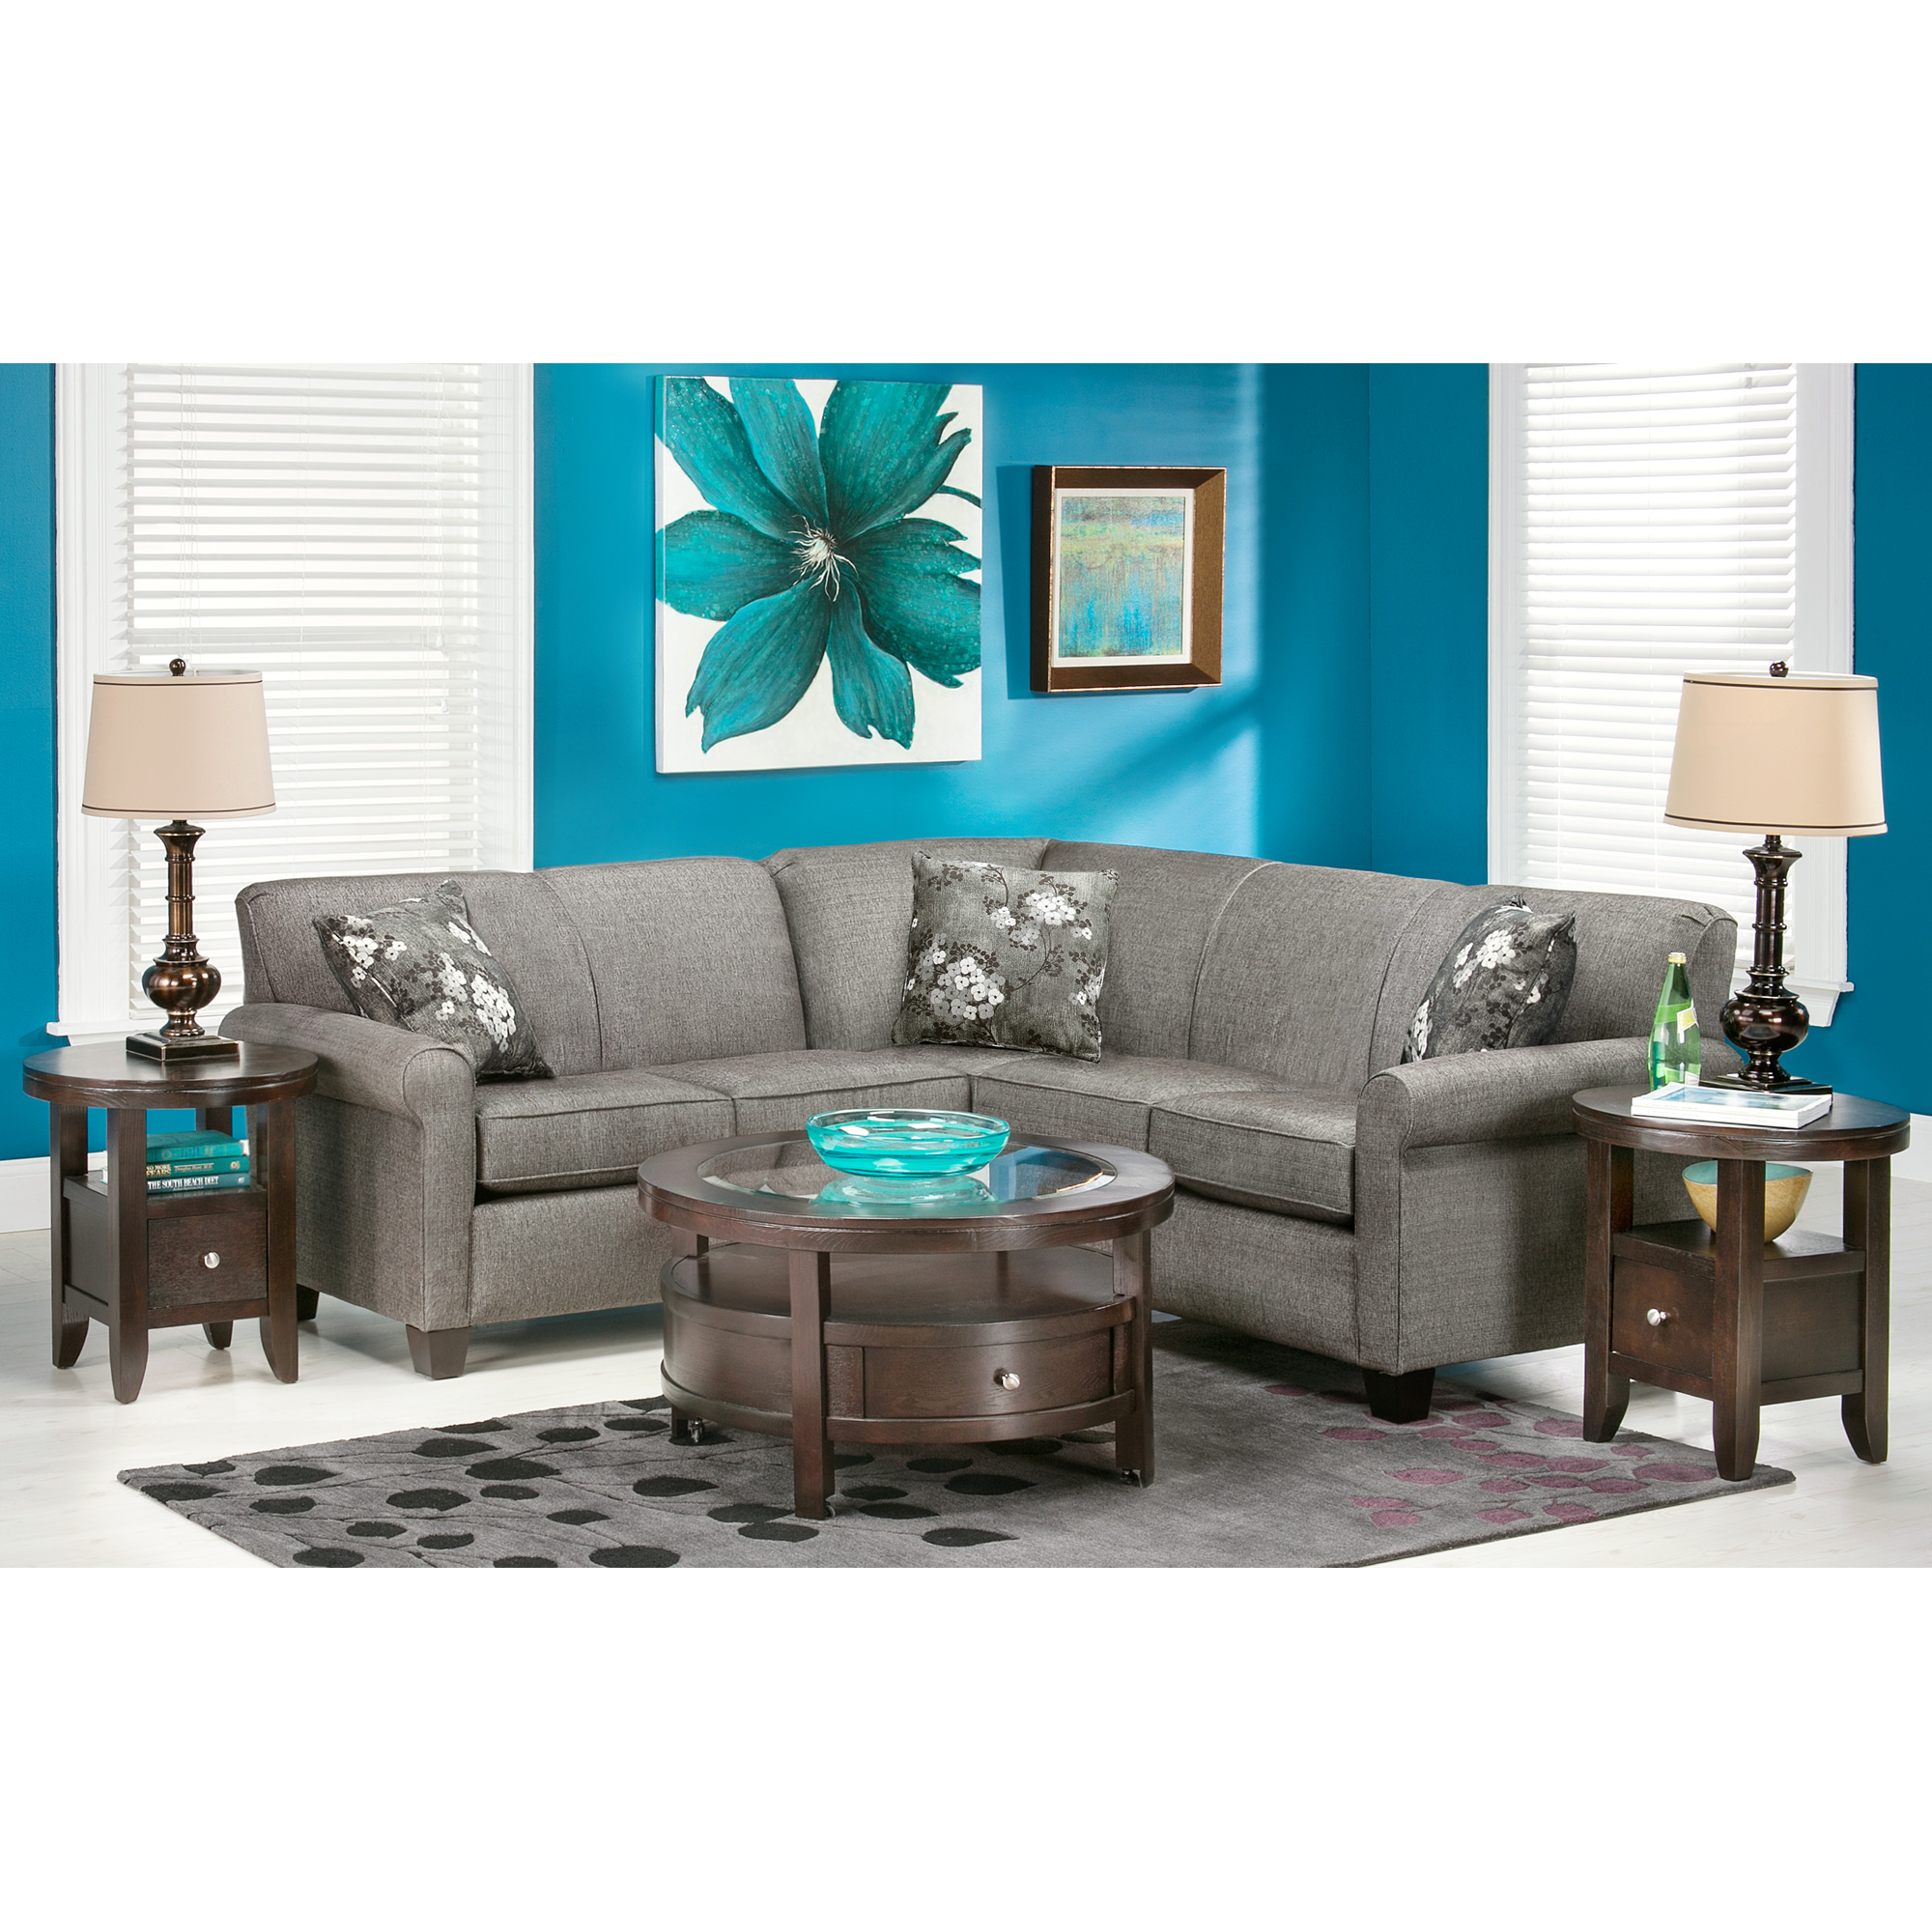 Dimensions By England   York Granite 2 Piece Sectional Sofa